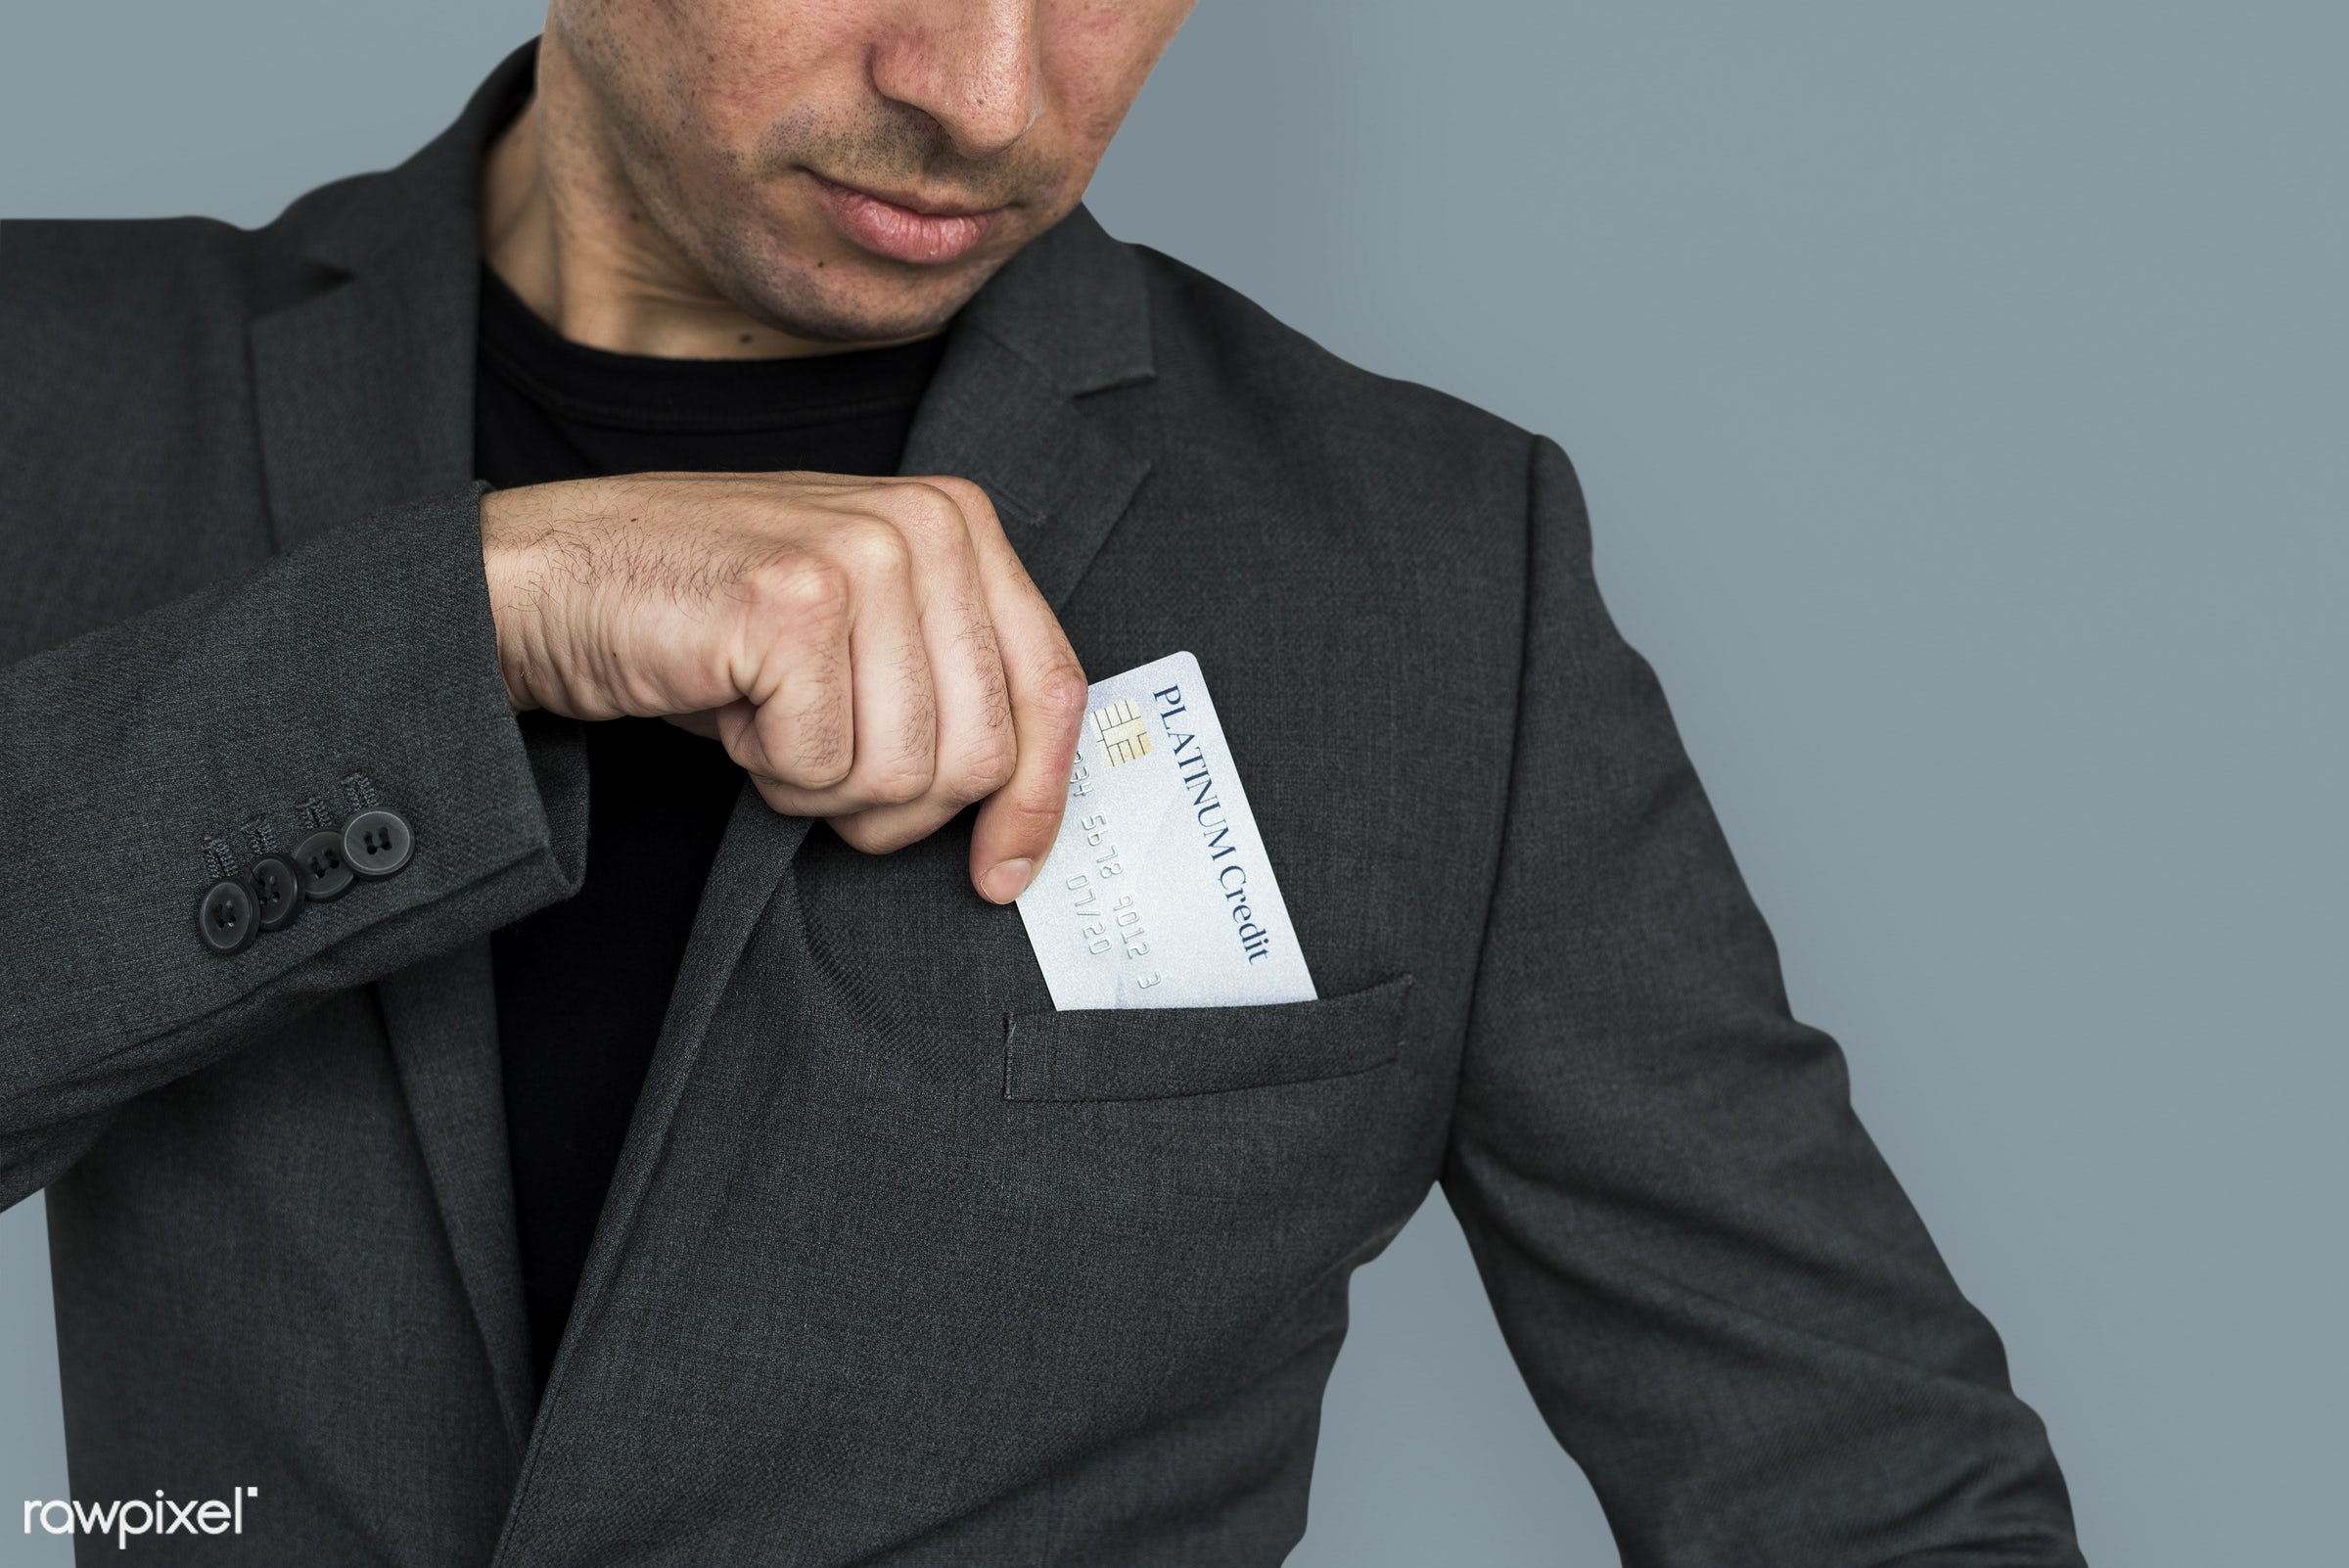 paying, adult, background, bill, business, business man, business wear, card, credit, credit card, expression, formal,...